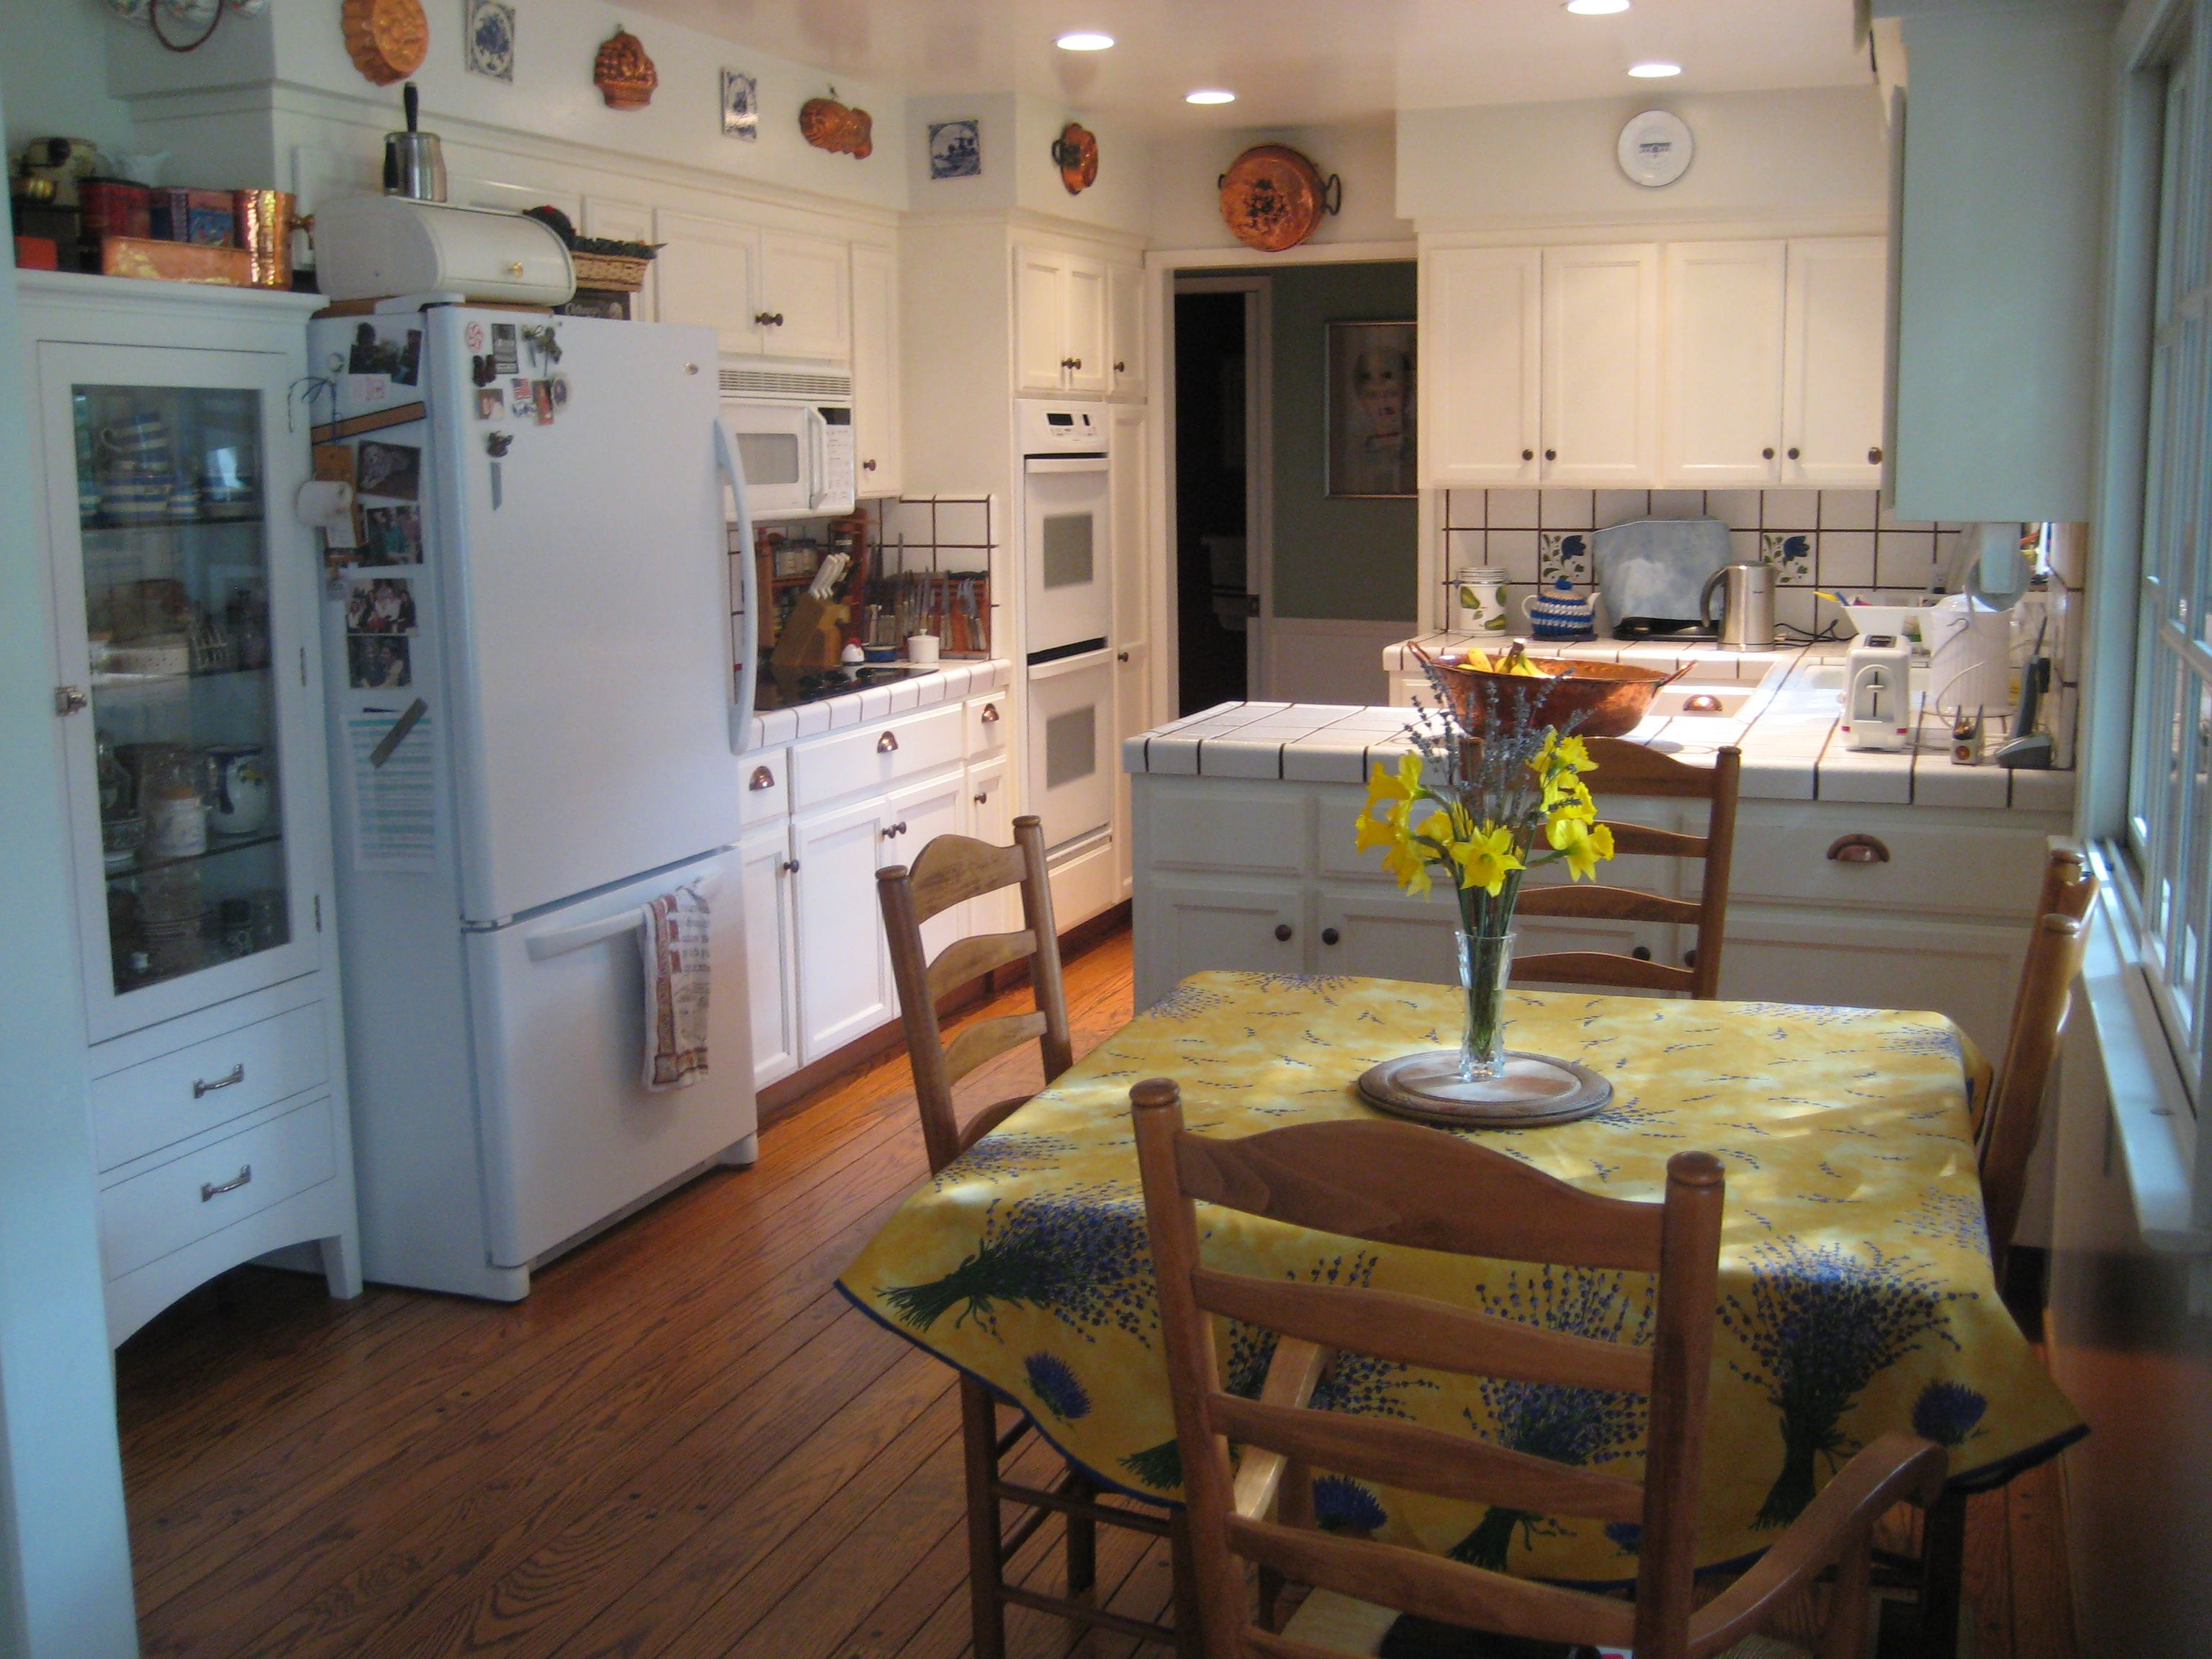 Small Kitchen Renovations Before And After Kitchen Renovation Before And After  Kitchens Interiors And